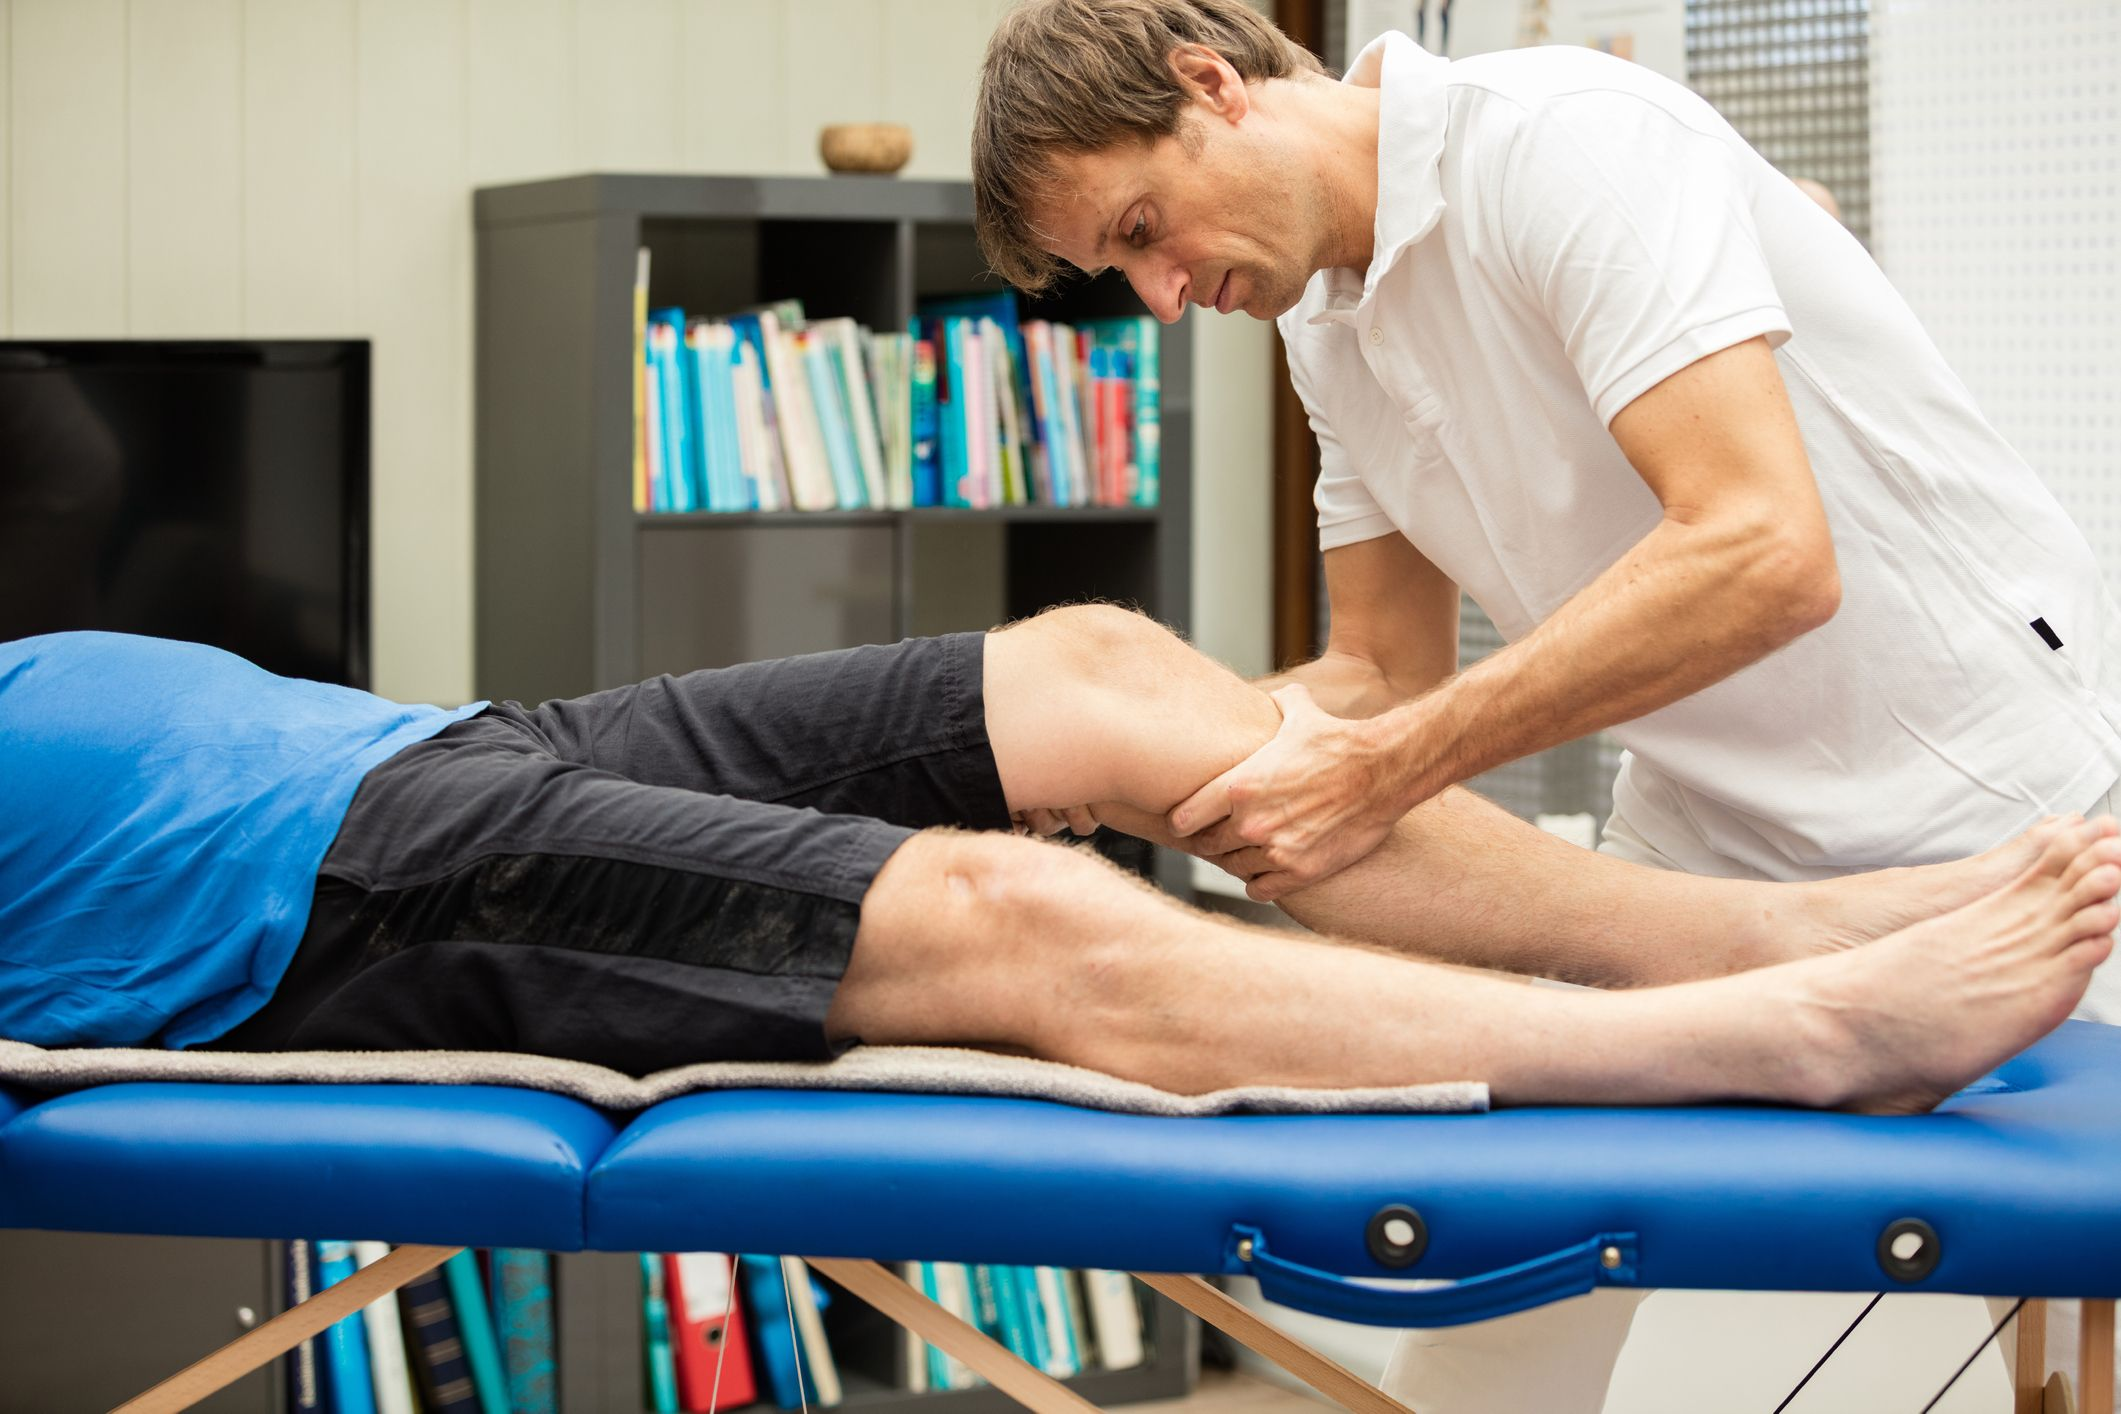 Massage deep muscle recovery treatments